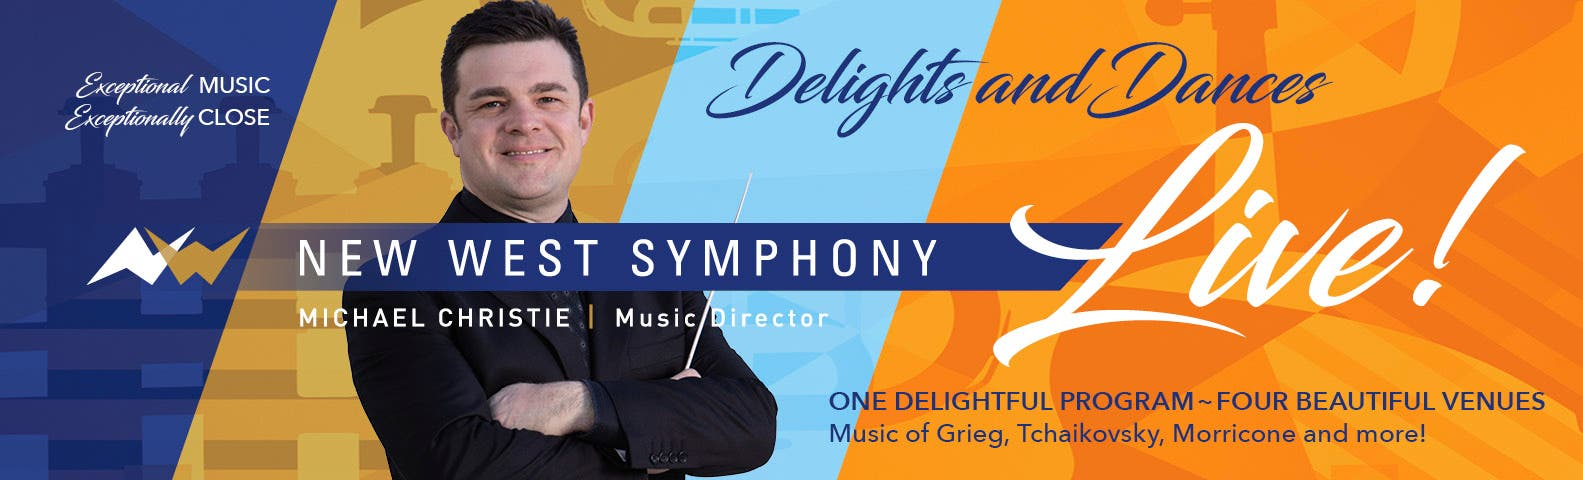 New West Symphony on Tour: Delights and Dances October 16th-19th